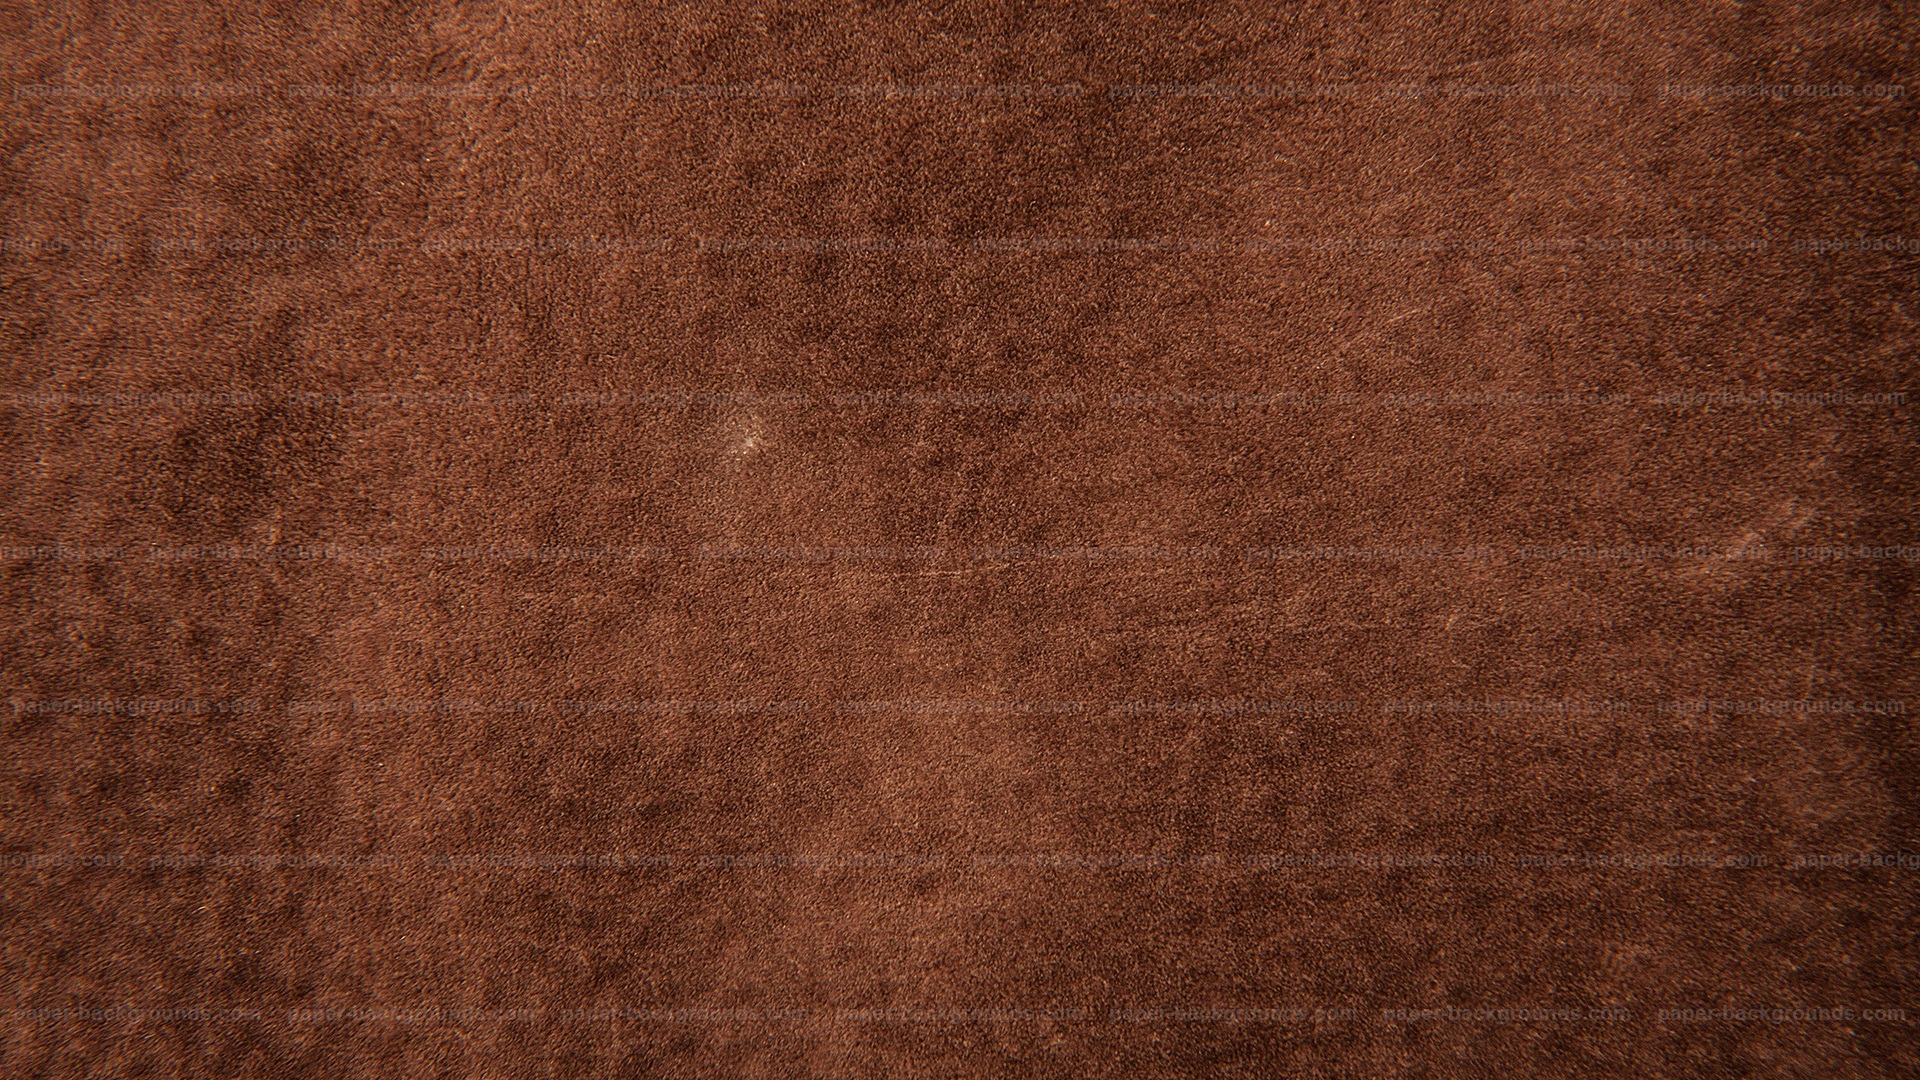 Vintage Brown Soft Leather Texture Background HD